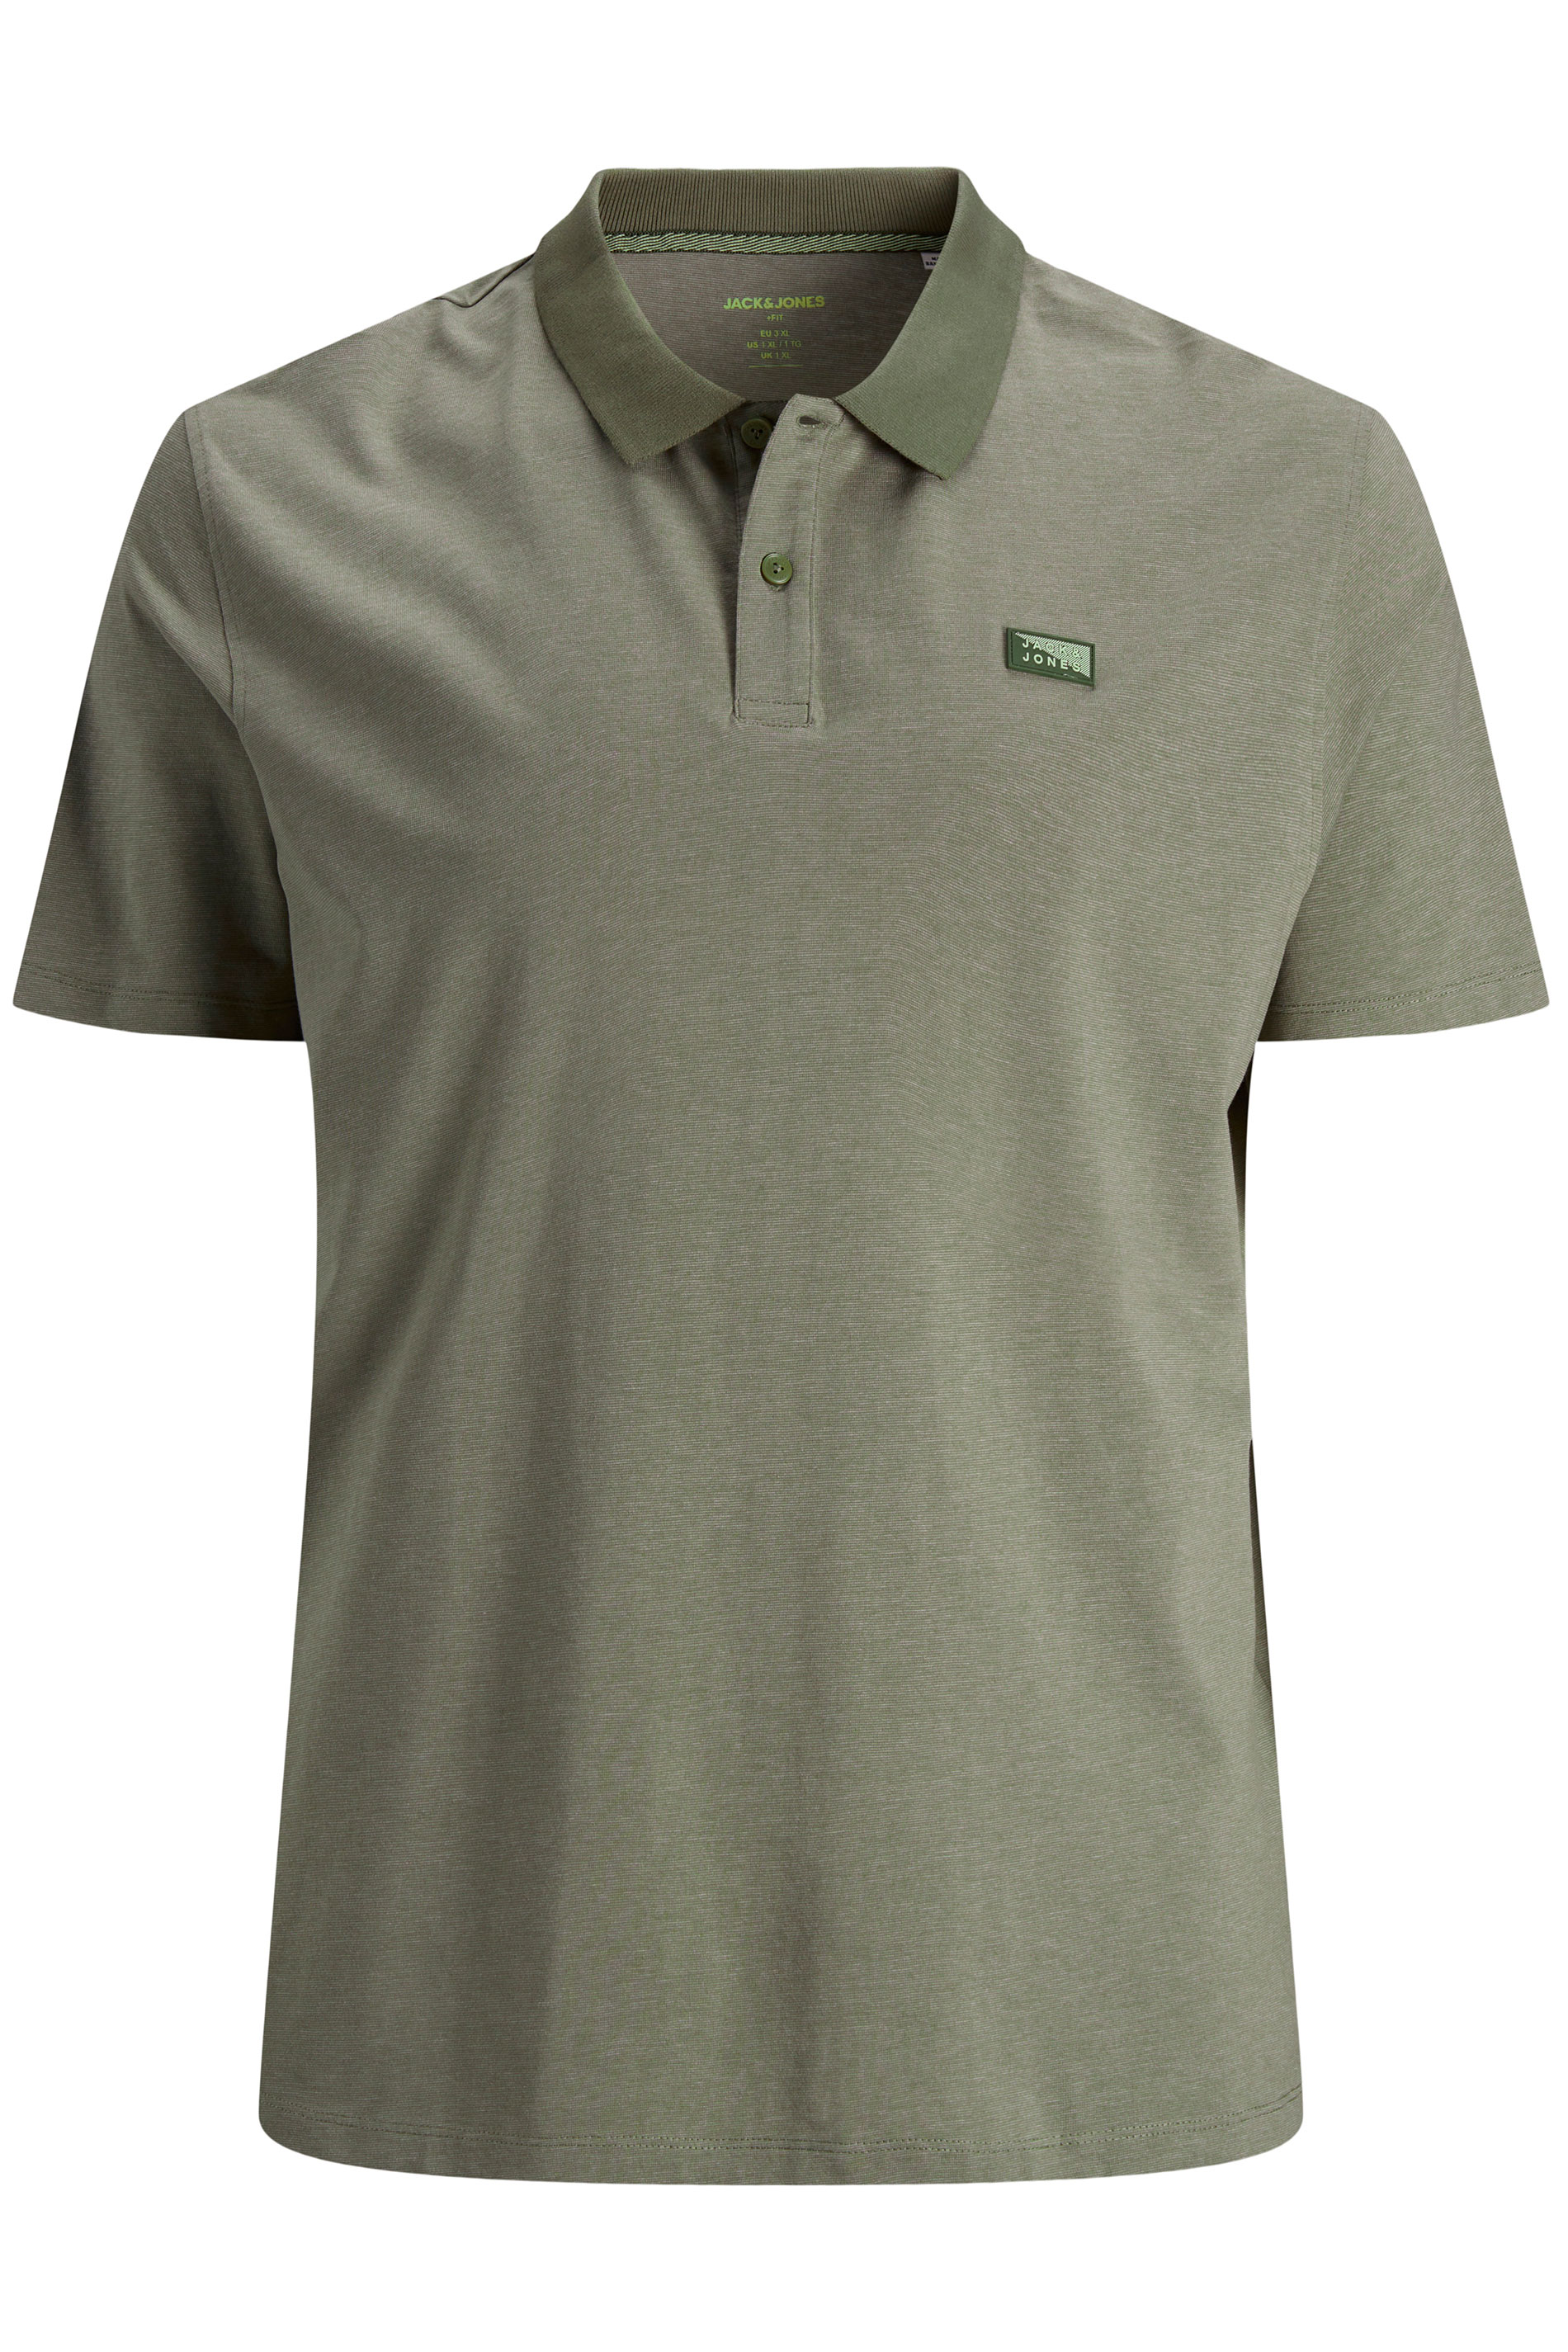 JACK & JONES Khaki Shultz Logo Polo Shirt